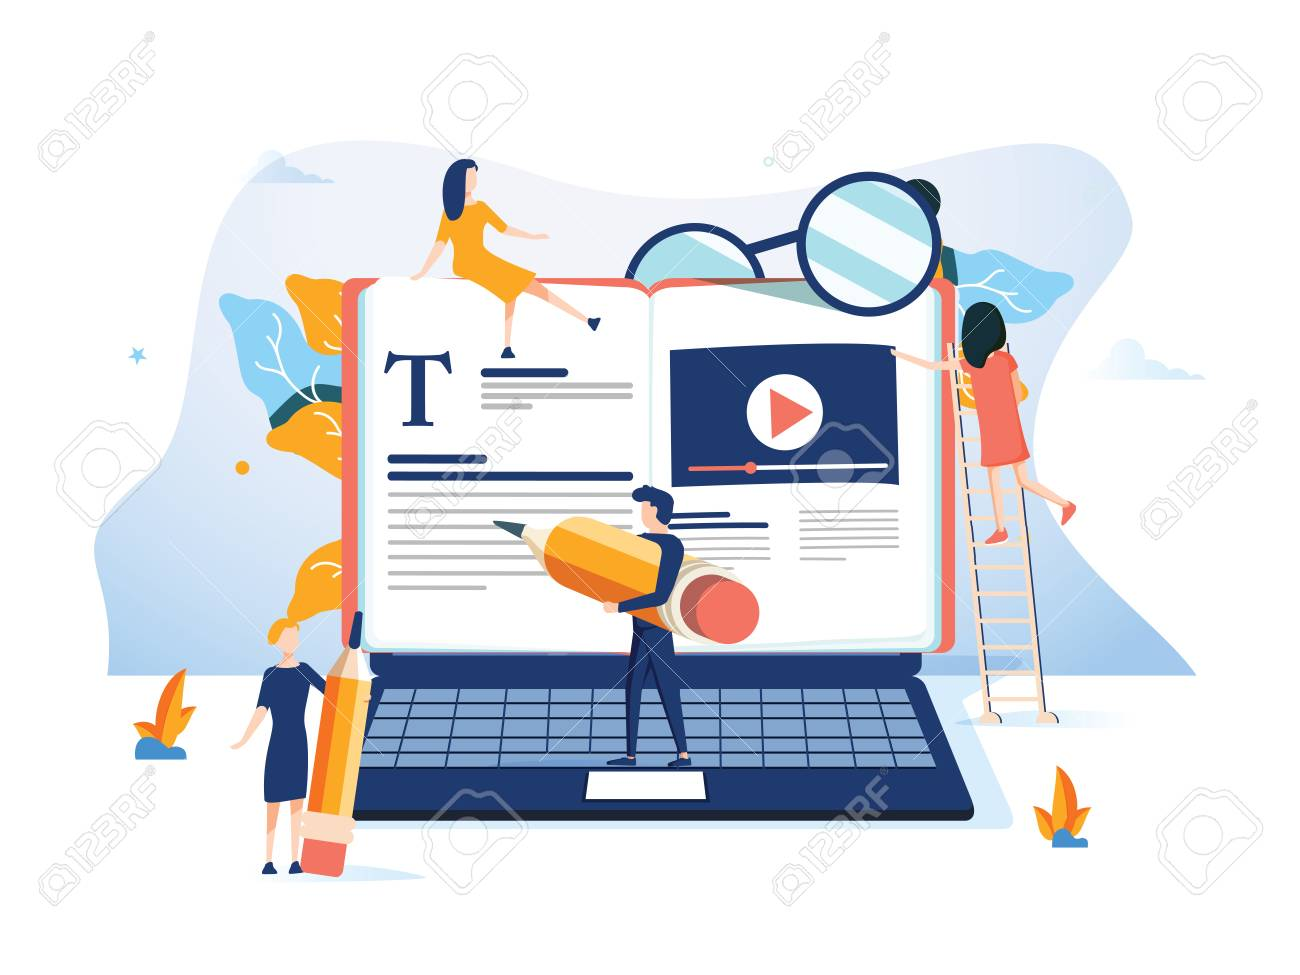 Concept Professional training, education video tutorial for web page, banner, presentation, social media documents. online business courses, presentation Vector illustration Expertise skill podcast - 127315465